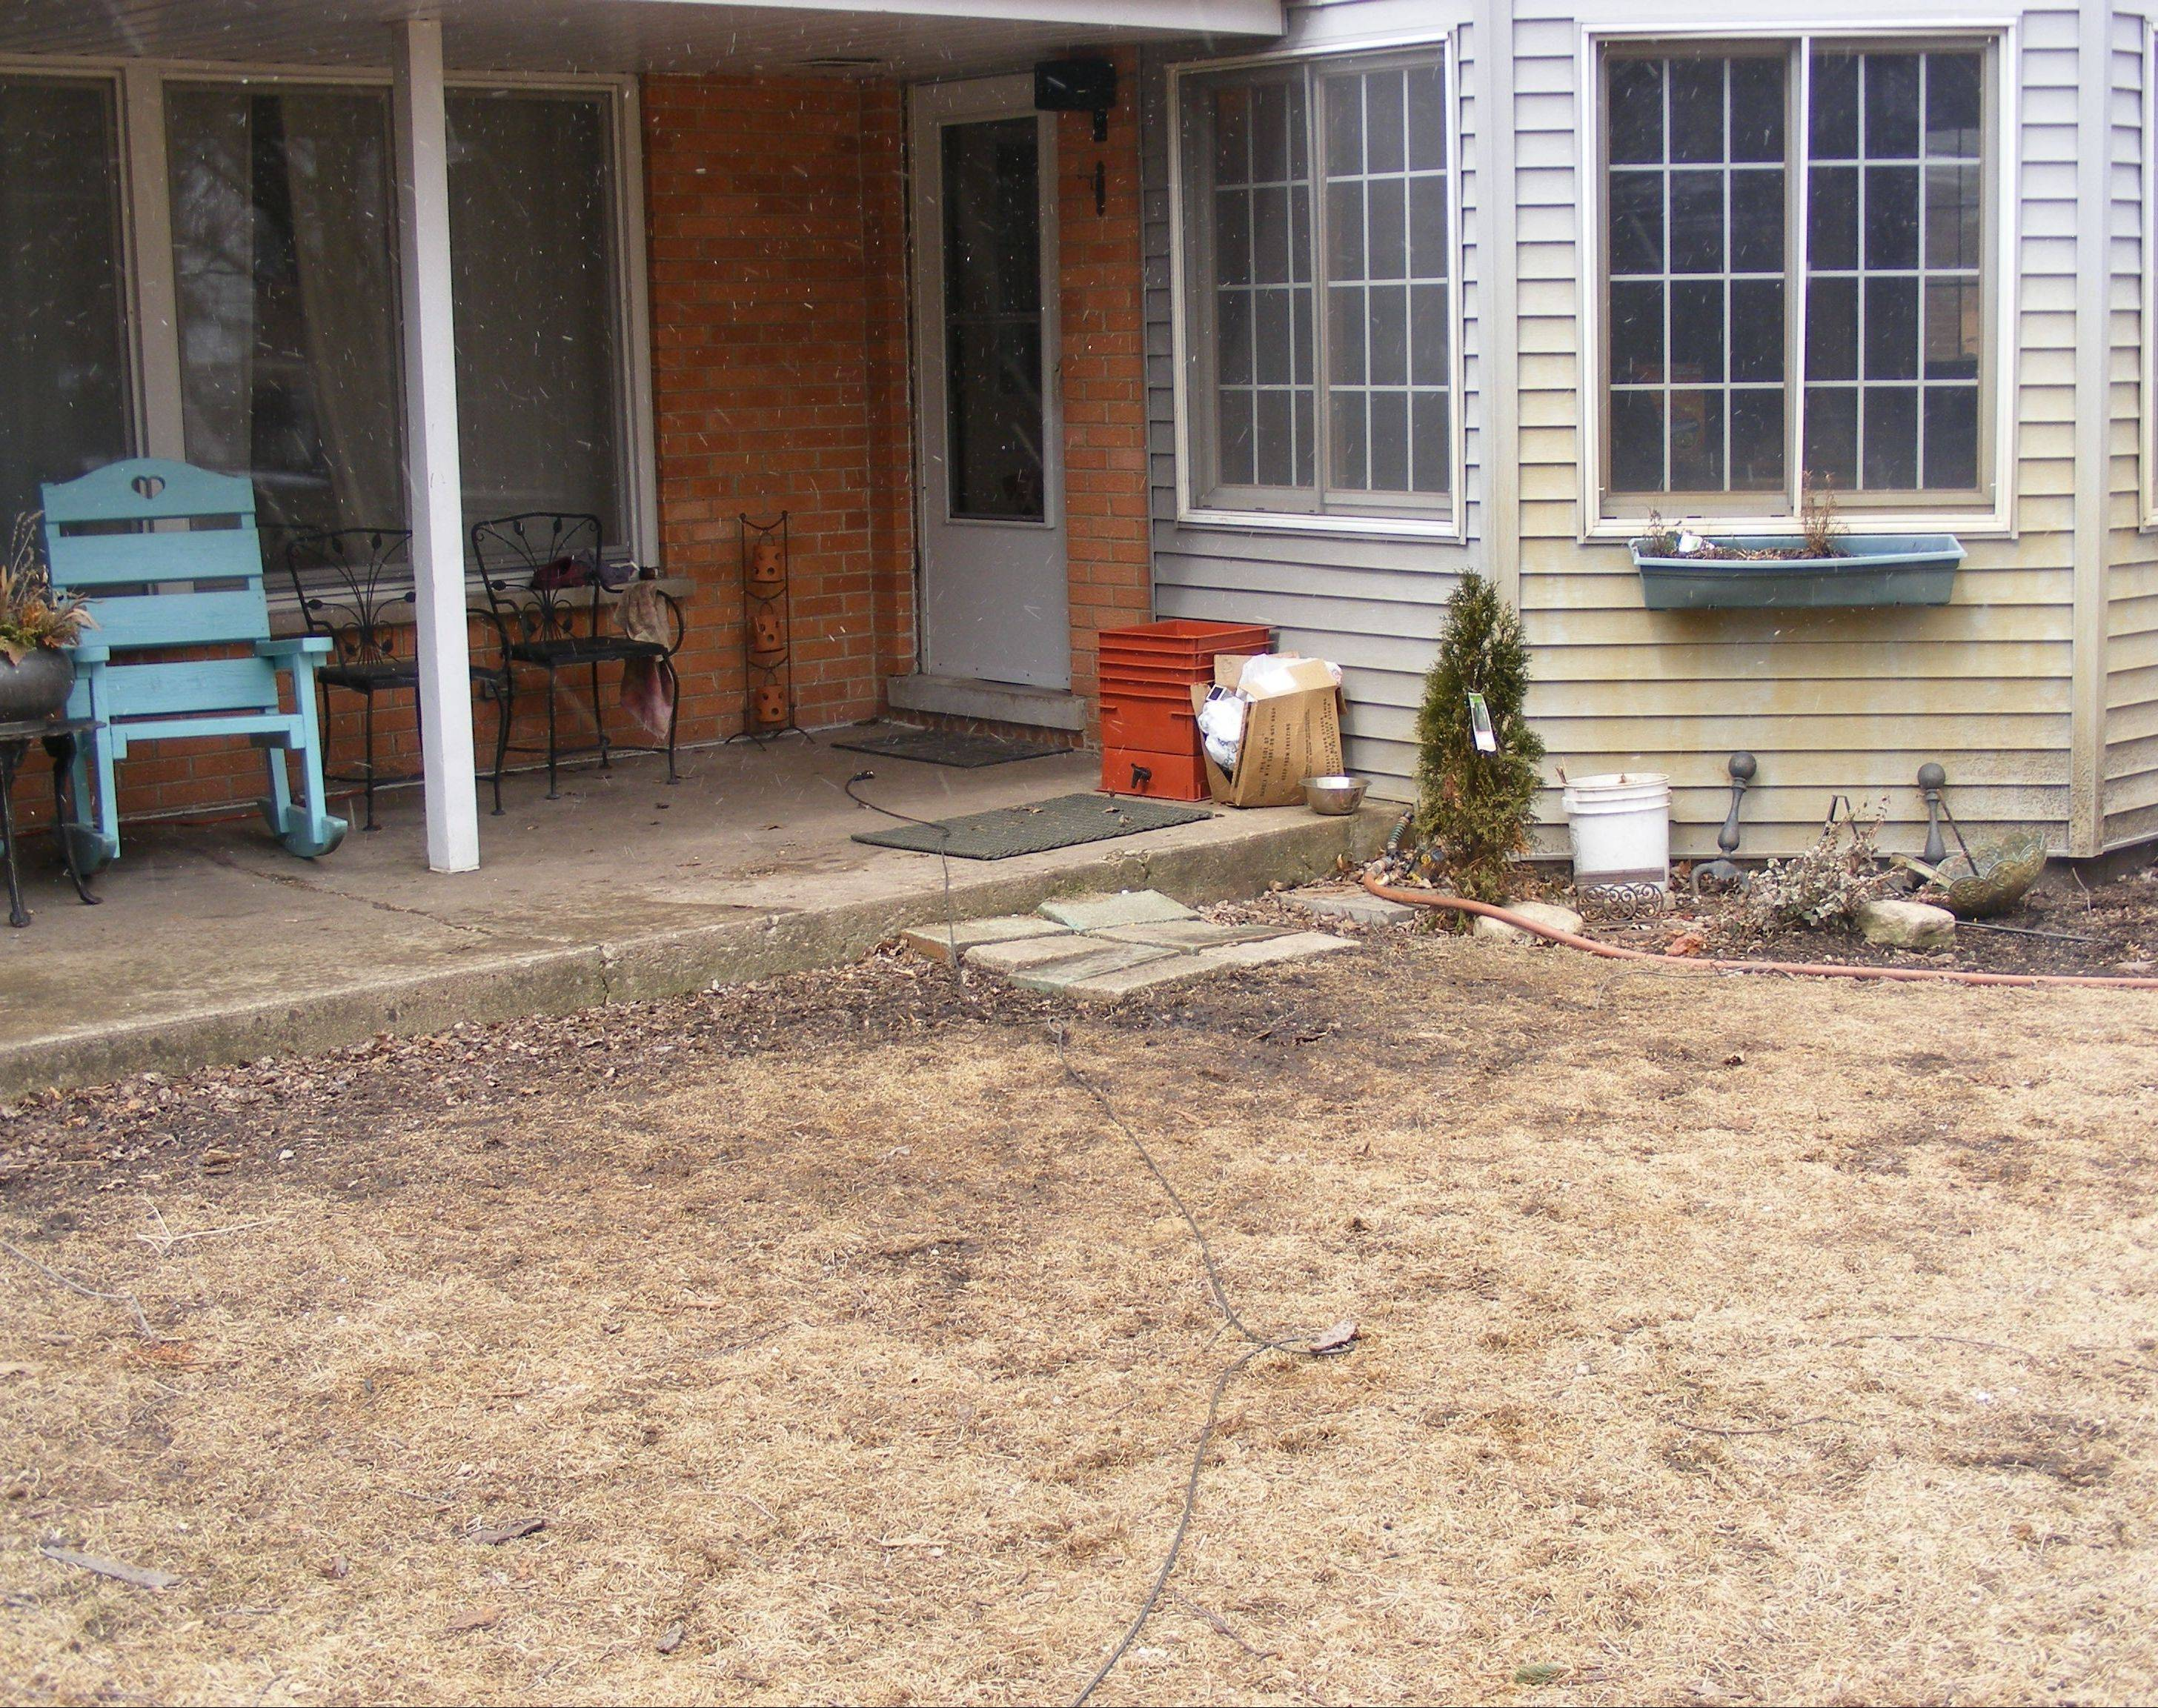 Outdoor makeover contest Week 5: Muddy paw print